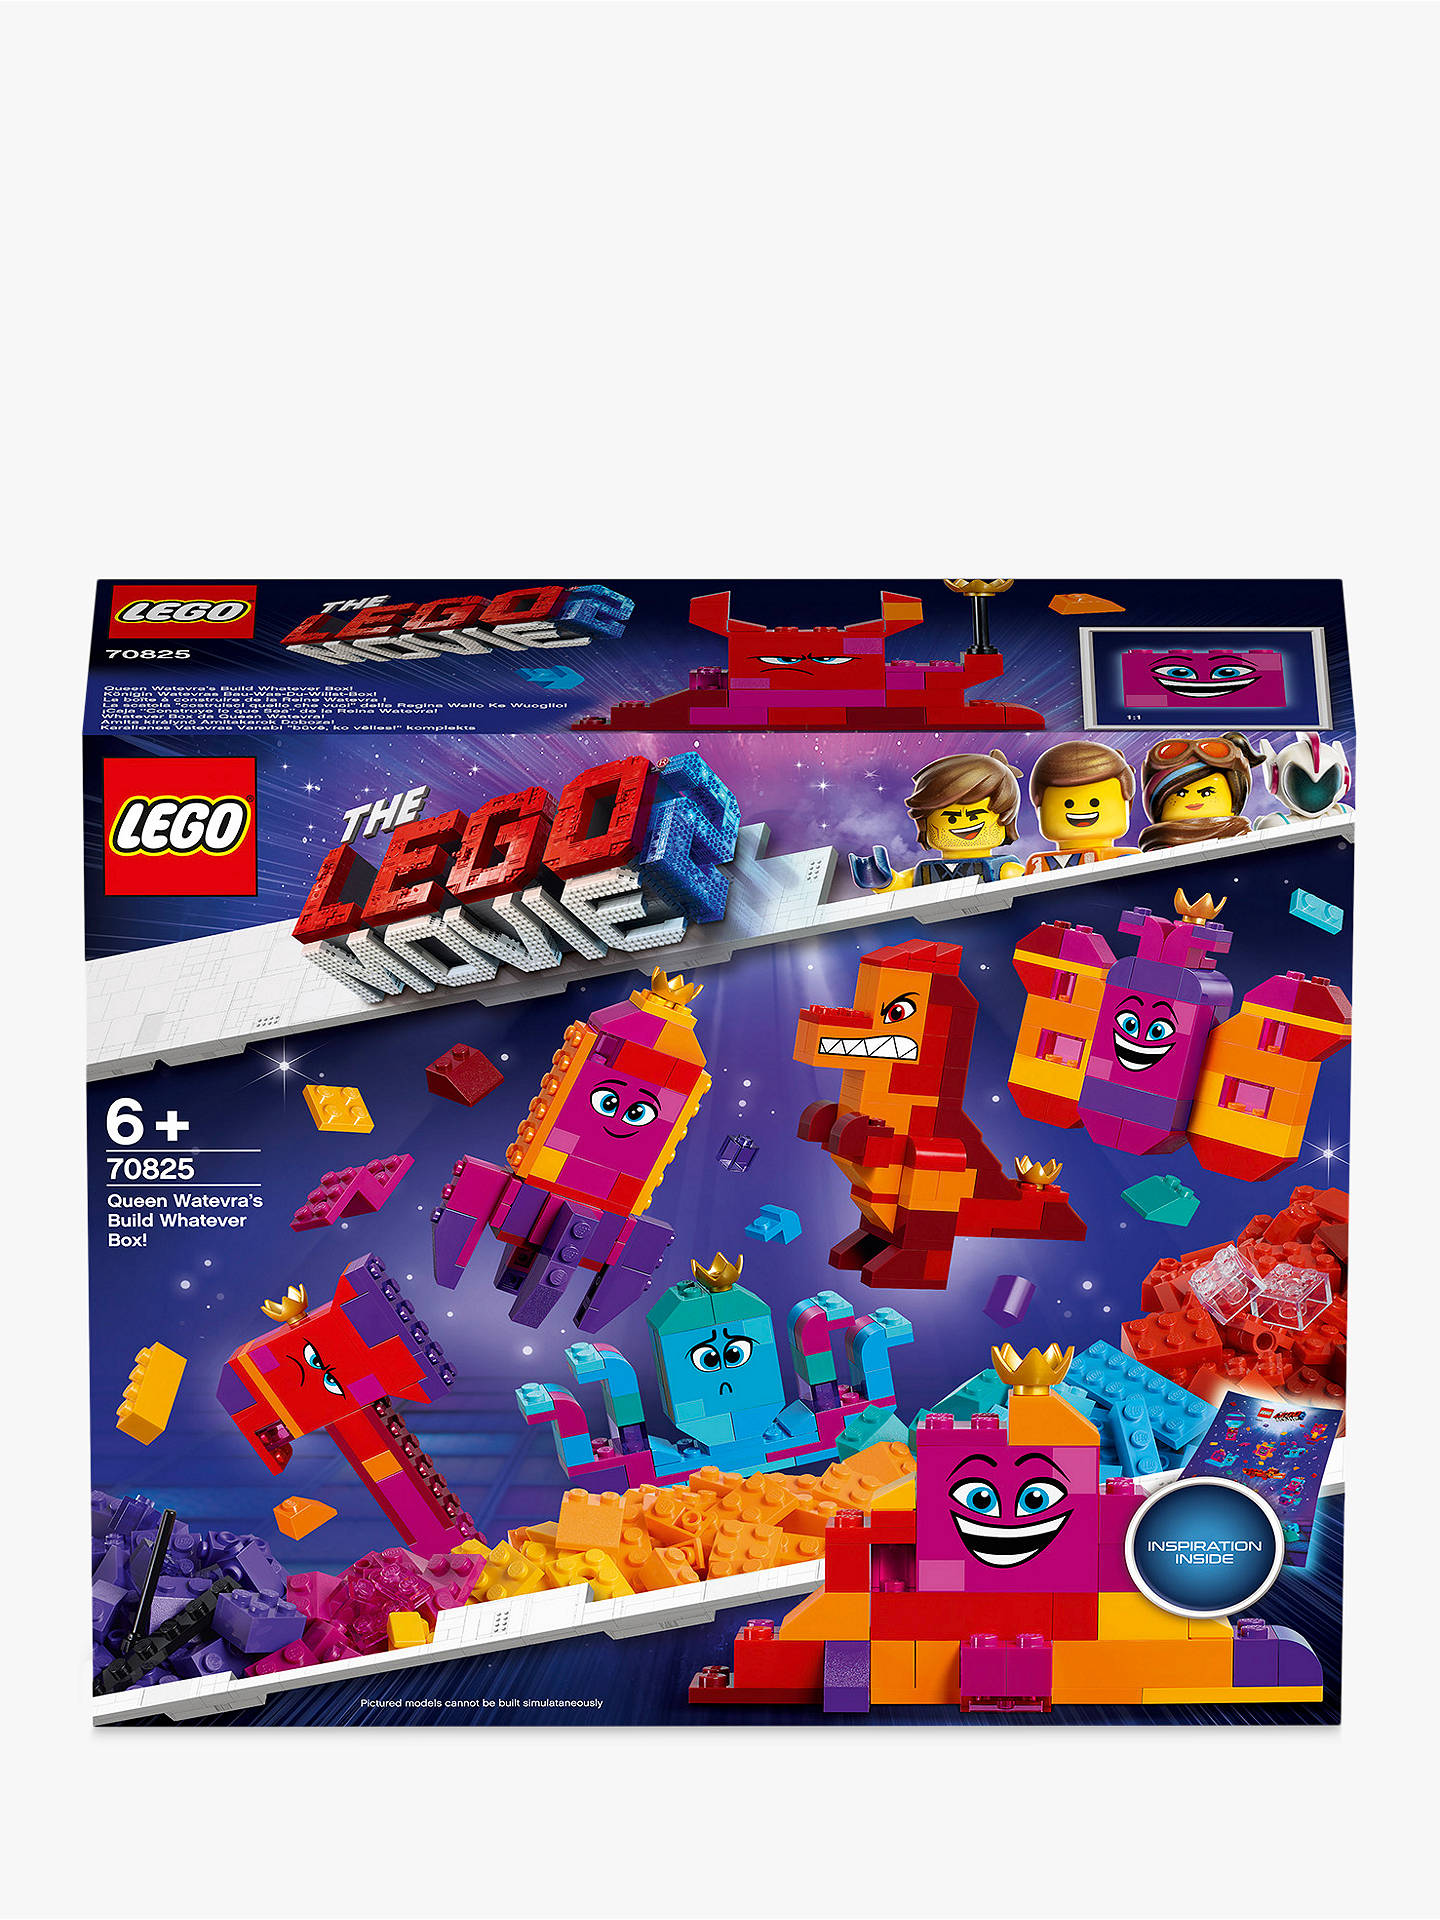 b380e0cbb34 Buy LEGO THE LEGO MOVIE 2 70825 Queen Watevra's Build Whatever Box  Construction Toys with Minifigures ...